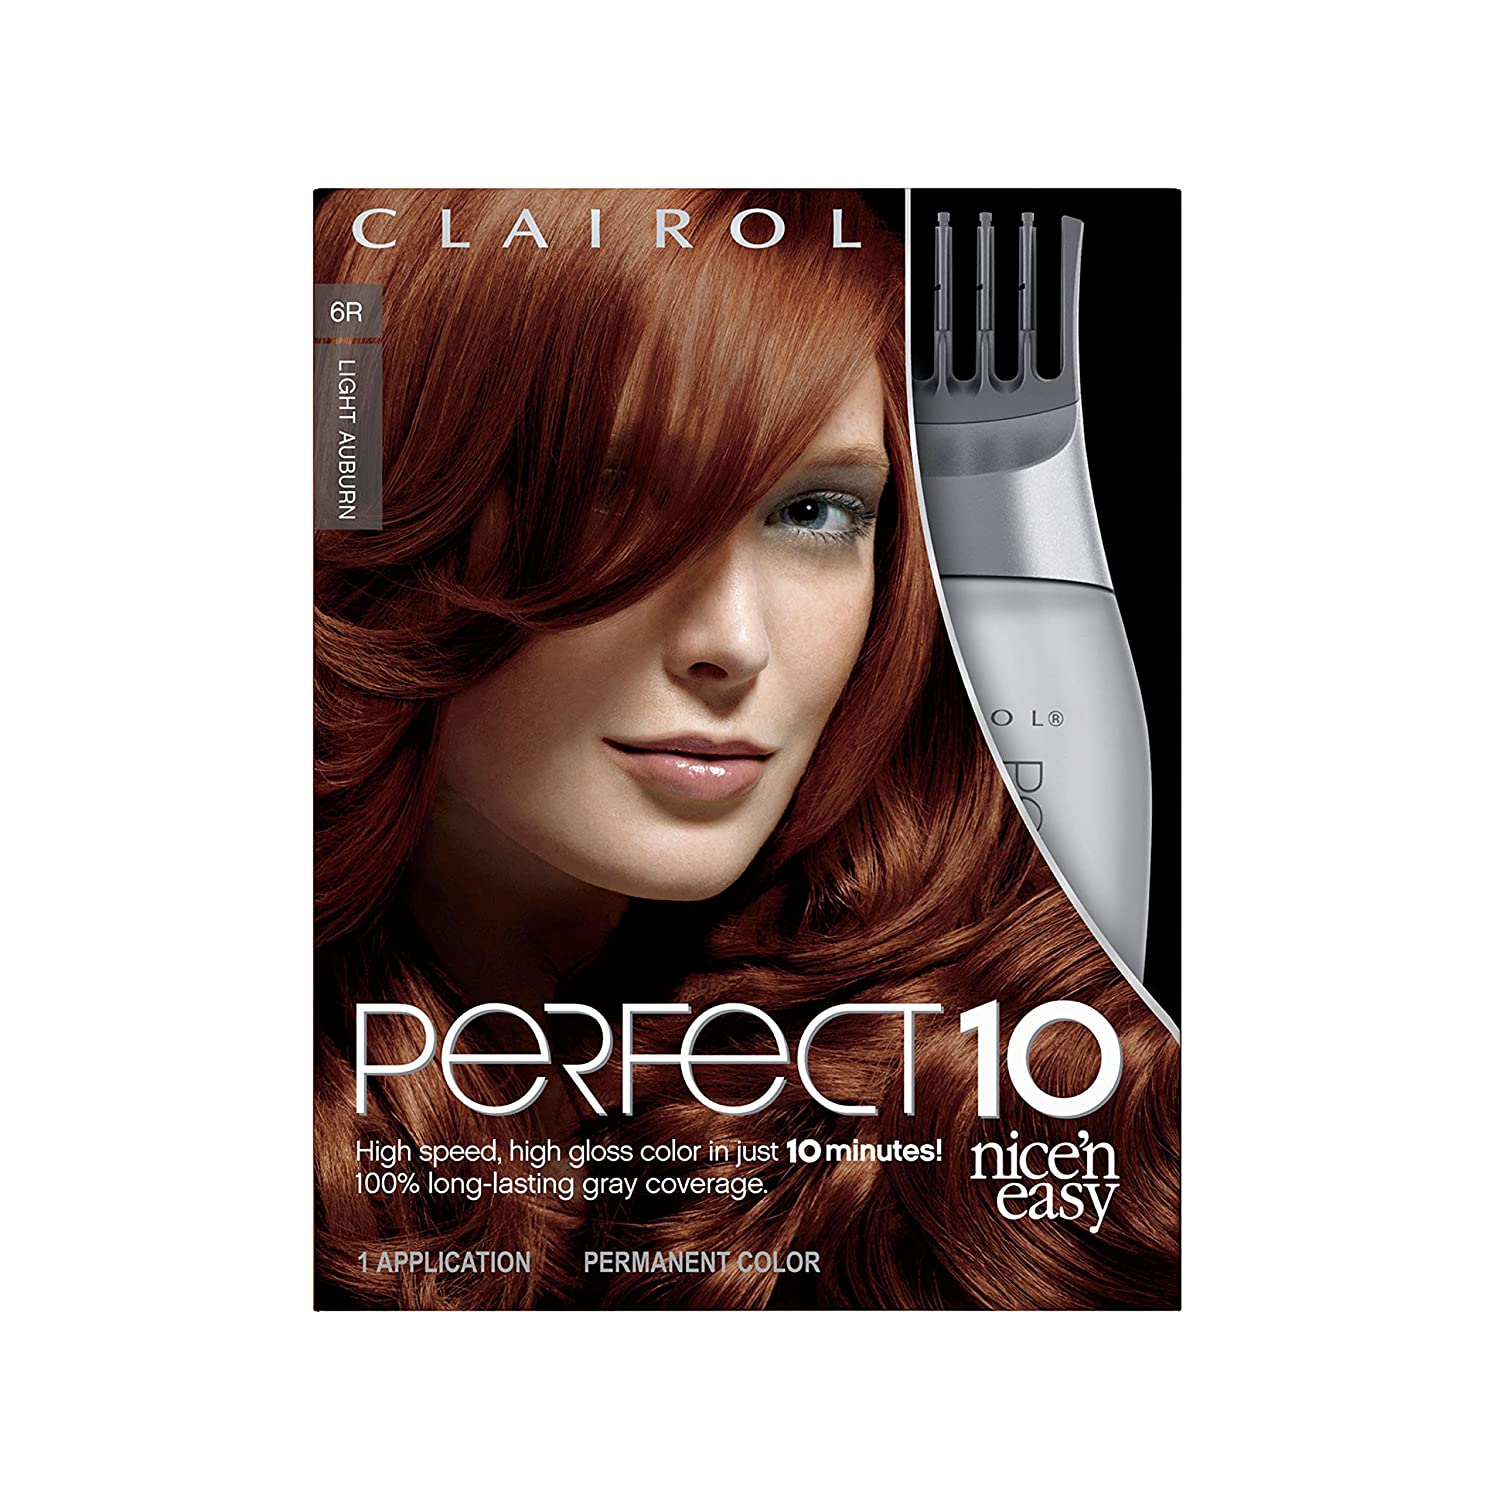 Clairol Nice 'N Easy Perfect 10 Permanent Haircolor Light Auburn #6R ATLANTIC MERCHANDISING. 99240002852